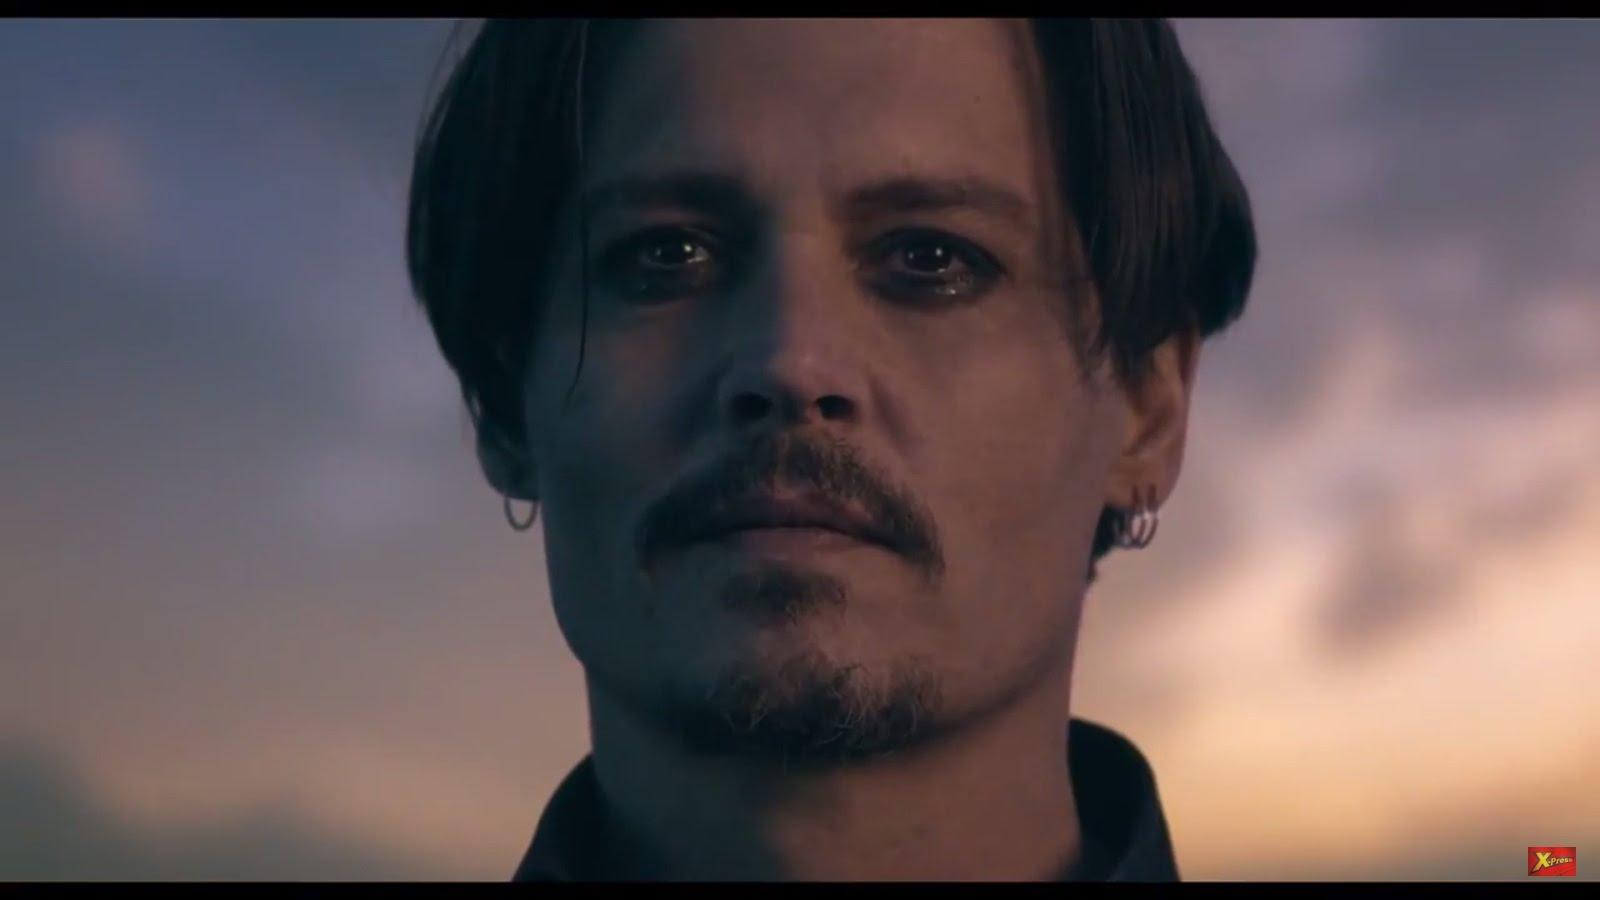 Dior In Hot Water Over New 'Sauvage' Ad Featuring Johnny Depp - People Are Outraged By The Cultural Appropriation!